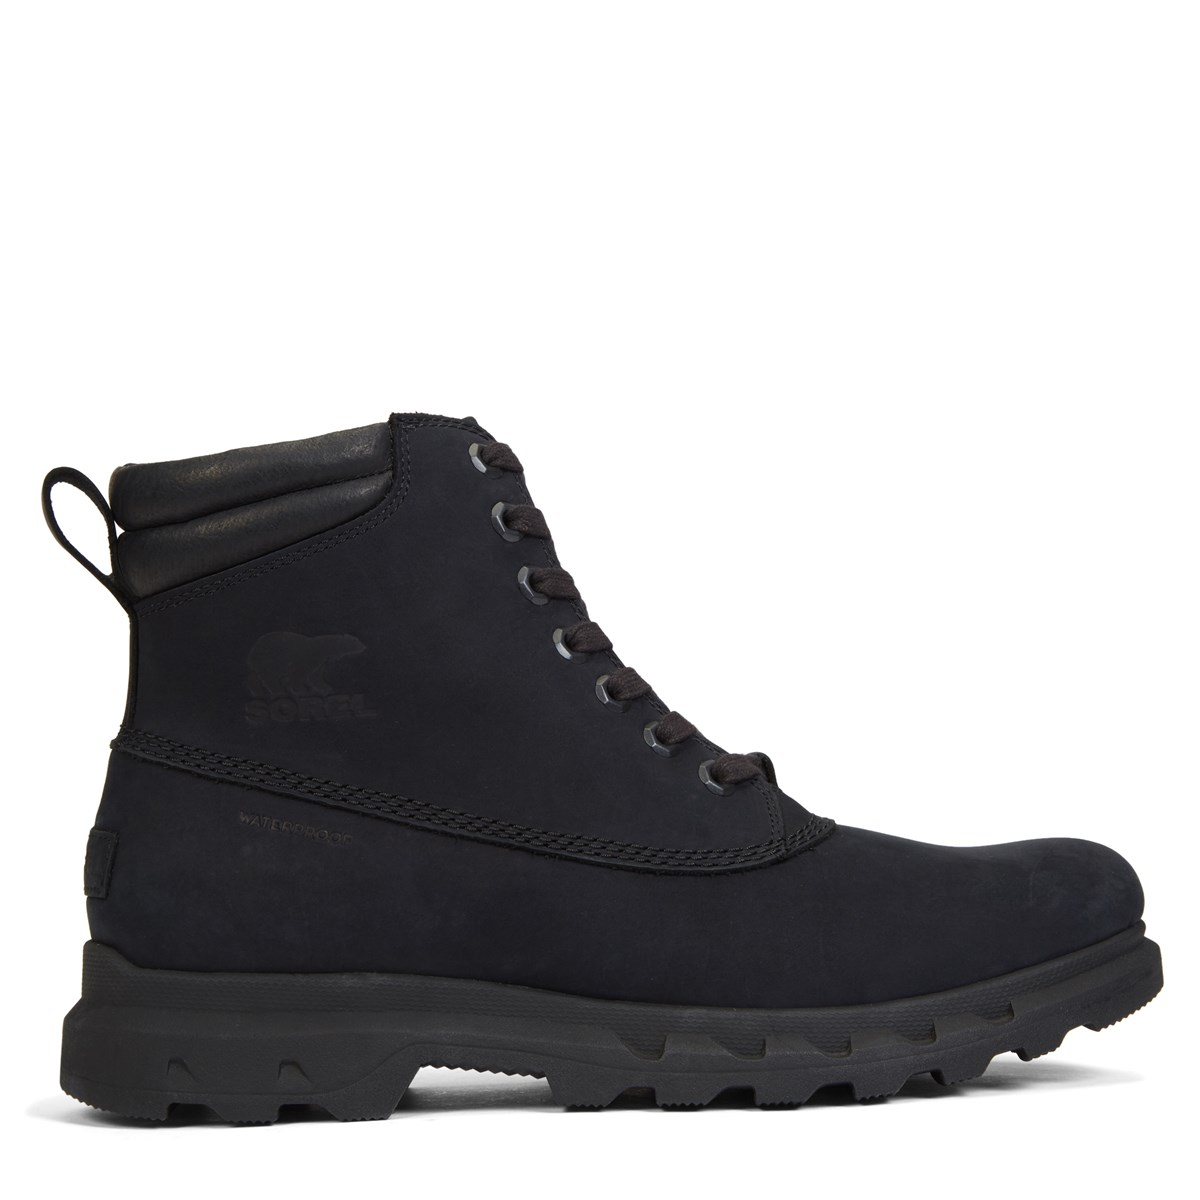 Men's Portzman Lace Black Boot